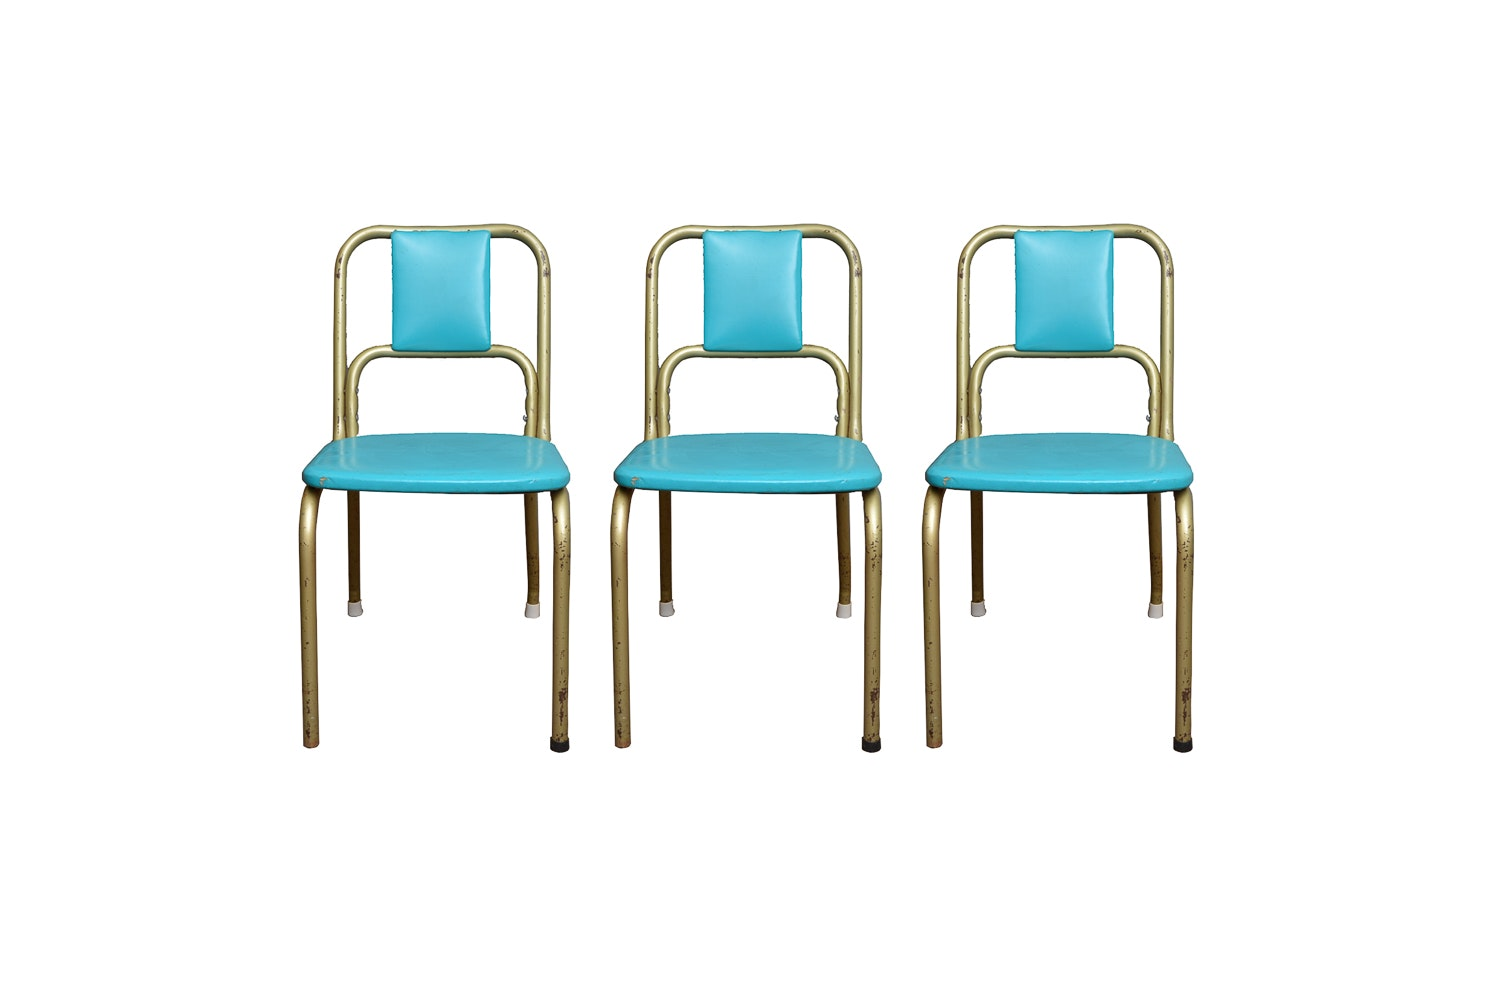 Three Mid Century Modern Dining Chairs from Duro Chrome